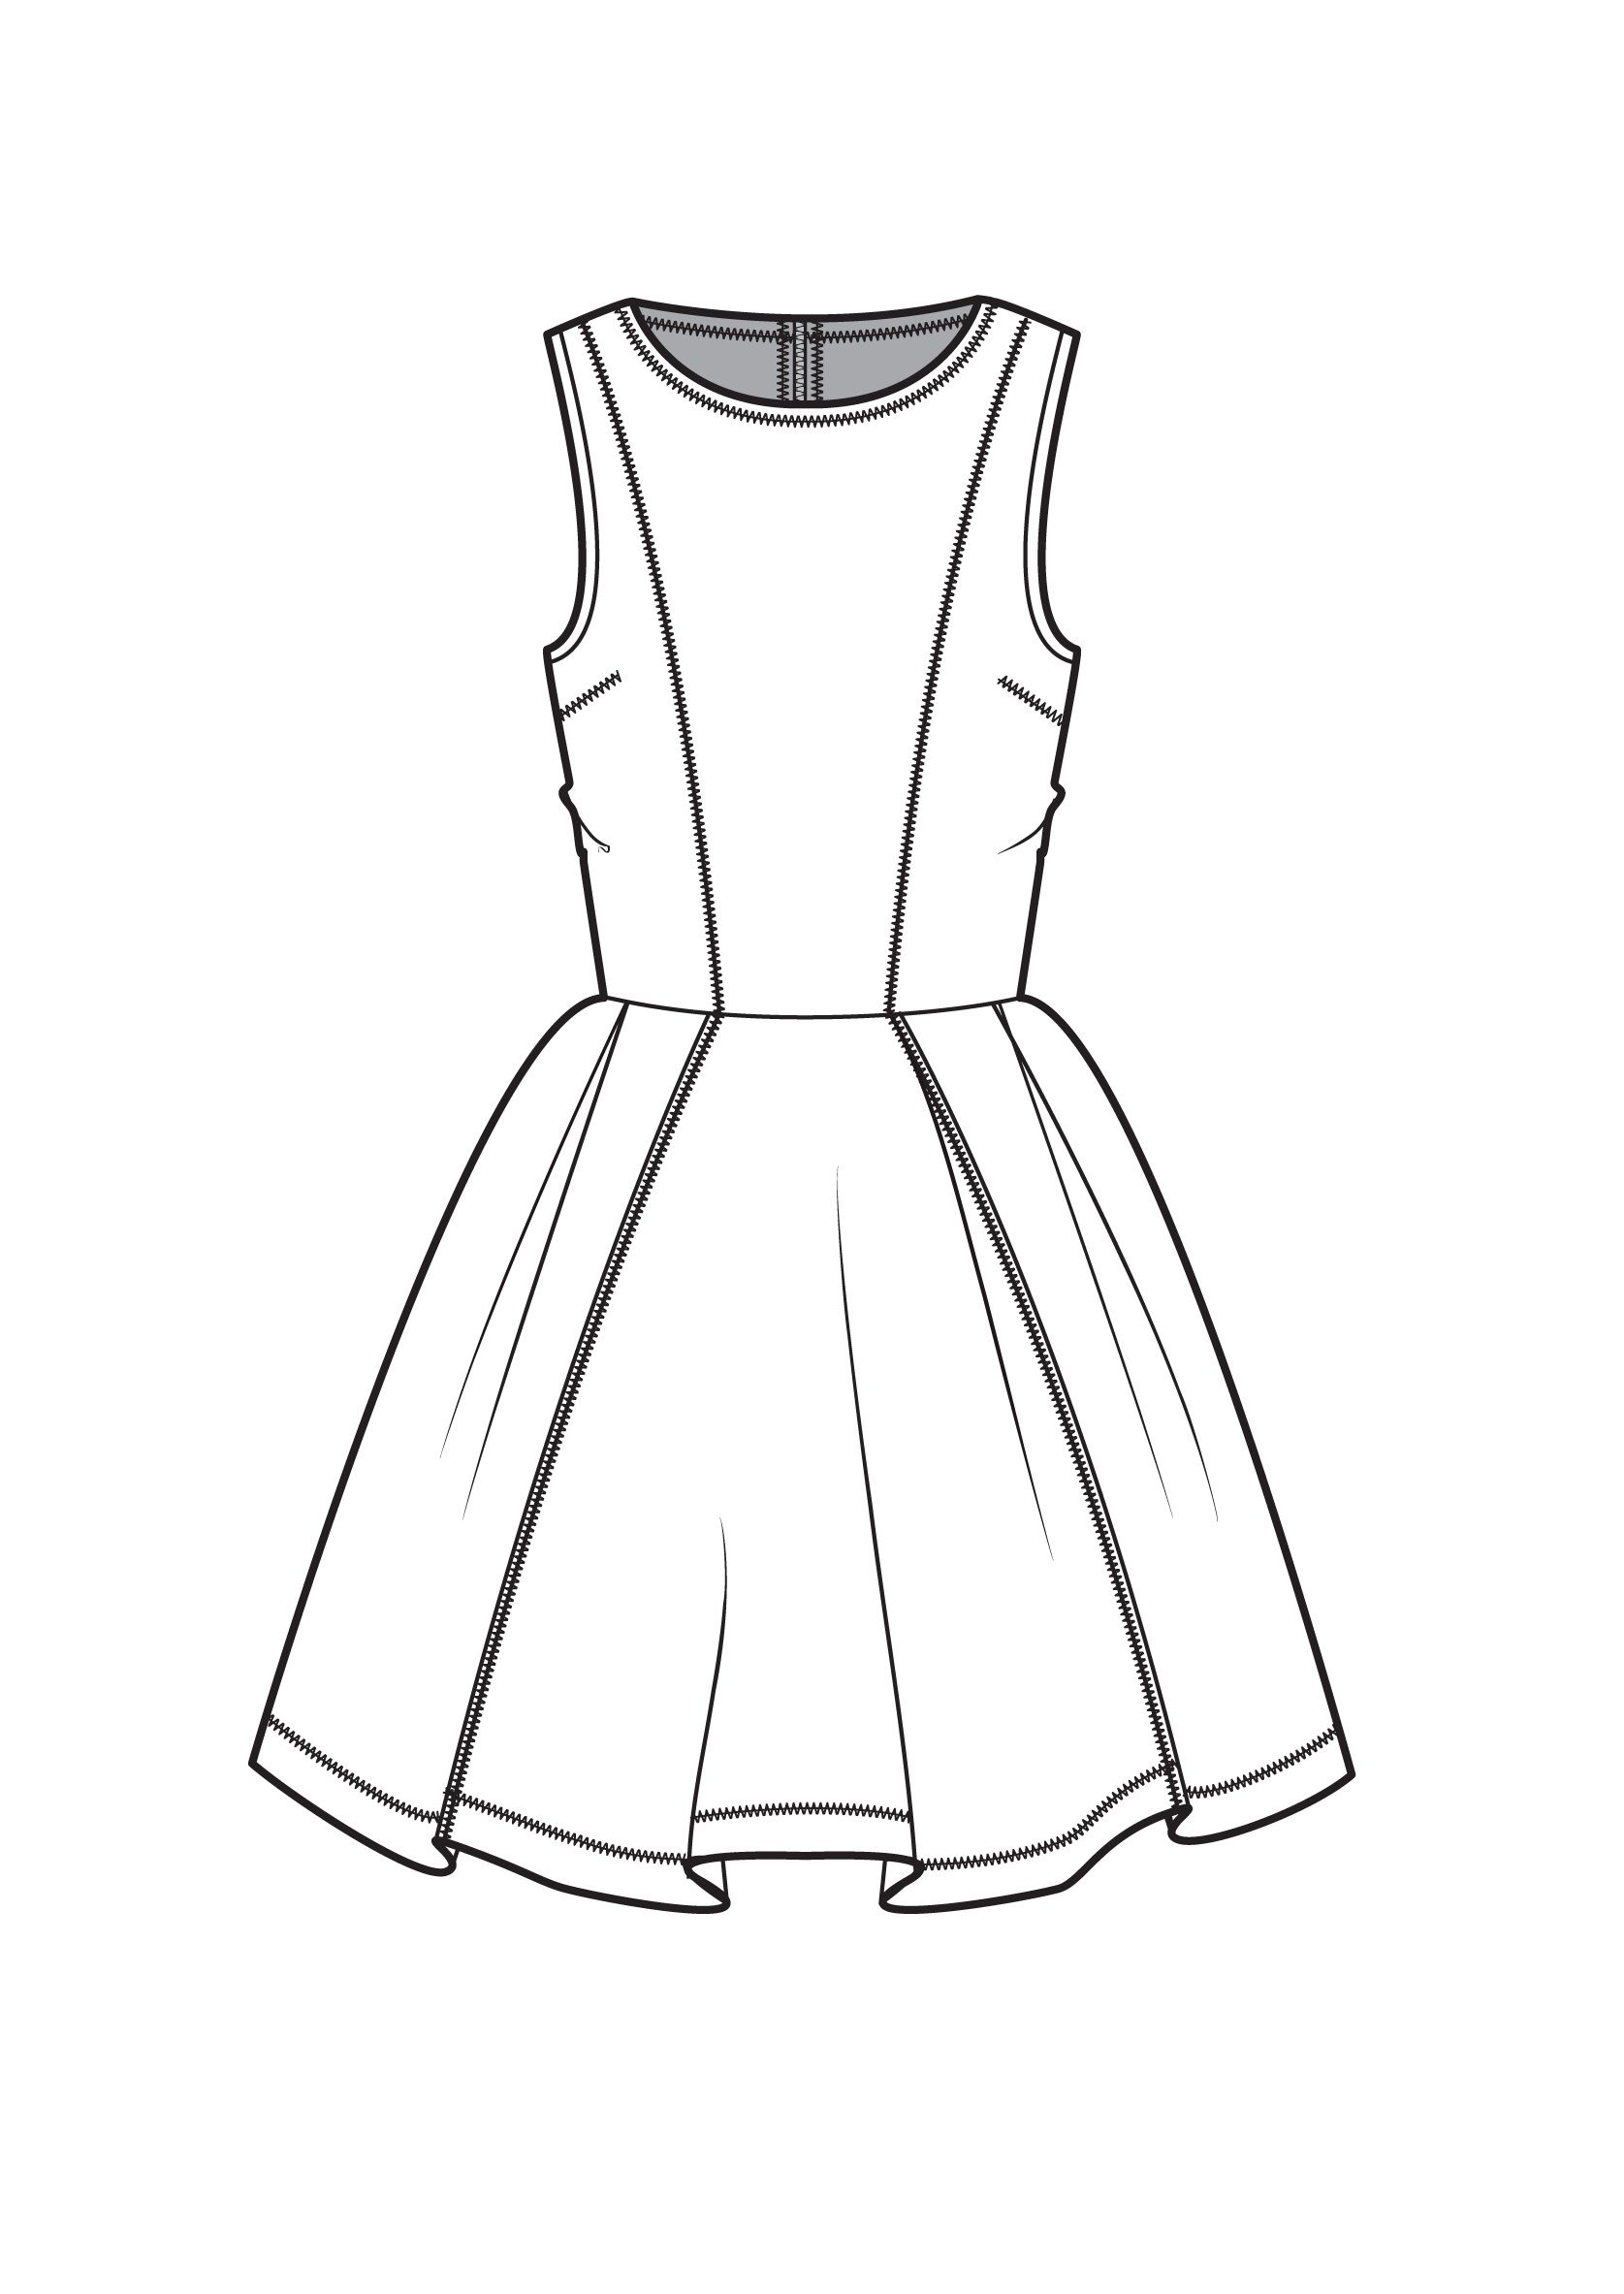 Line Art Fashion Design : Fit and flare dress fashion flat drawings pinterest